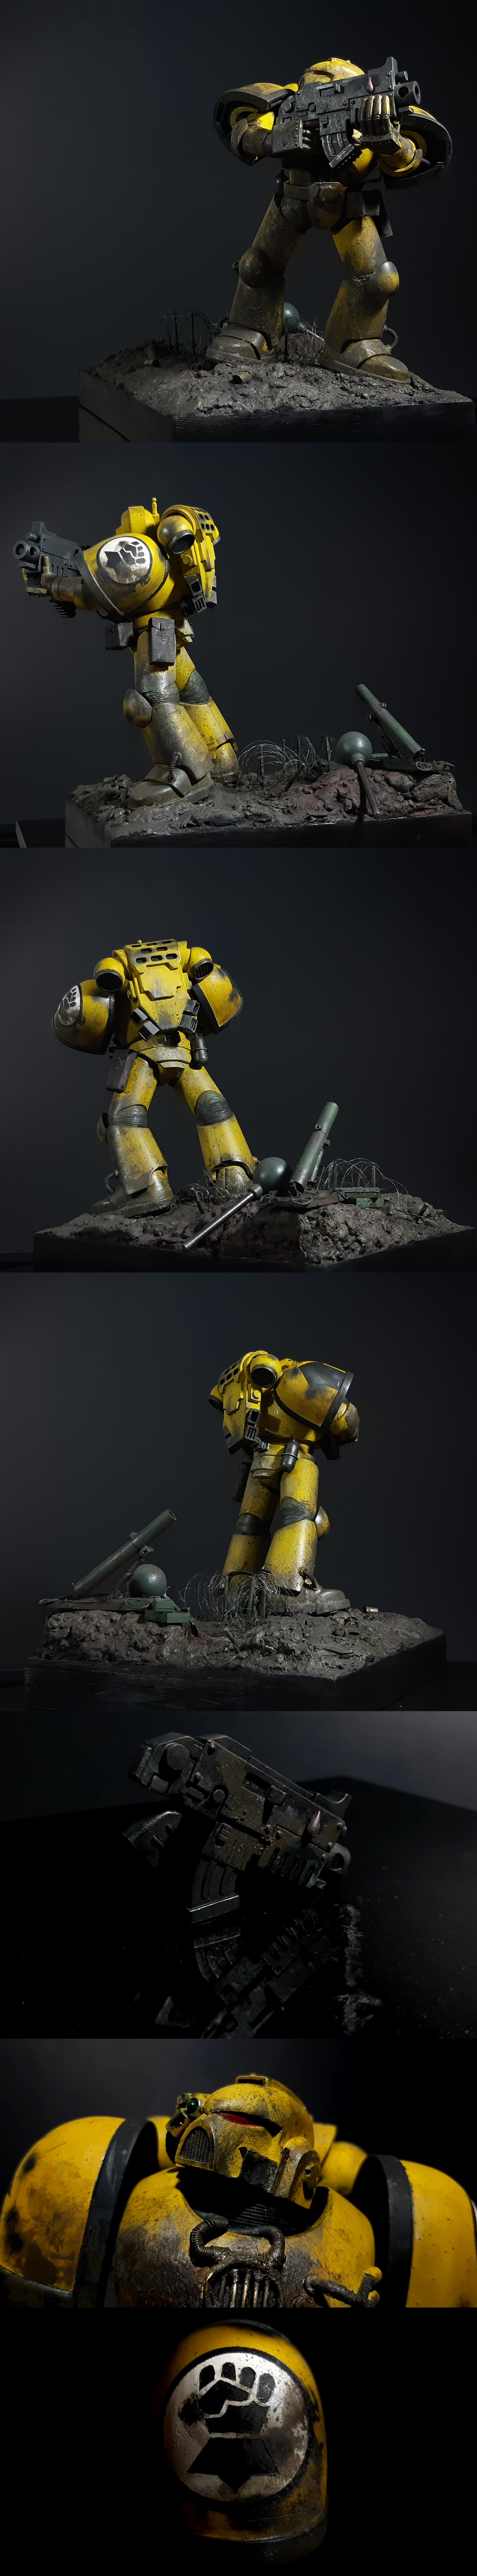 Imperial Fists, Scratch Build, Space Marines, Warhammer 40,000